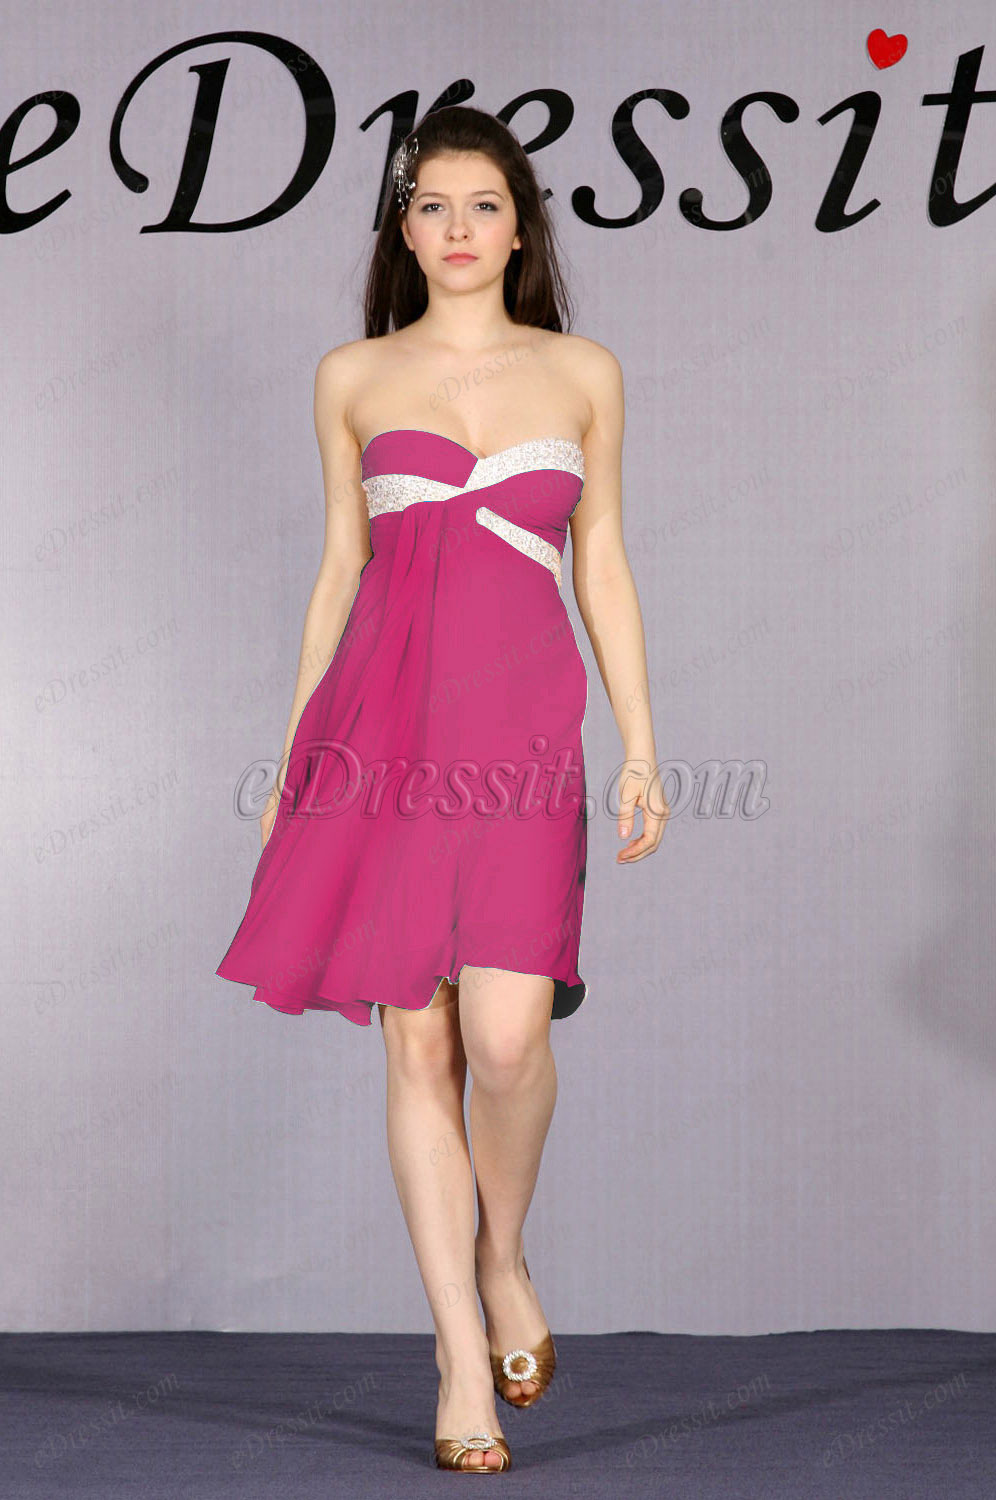 Clearance Sale! eDressit Pink Cocktail Dress --Size UK16 (04091814d)